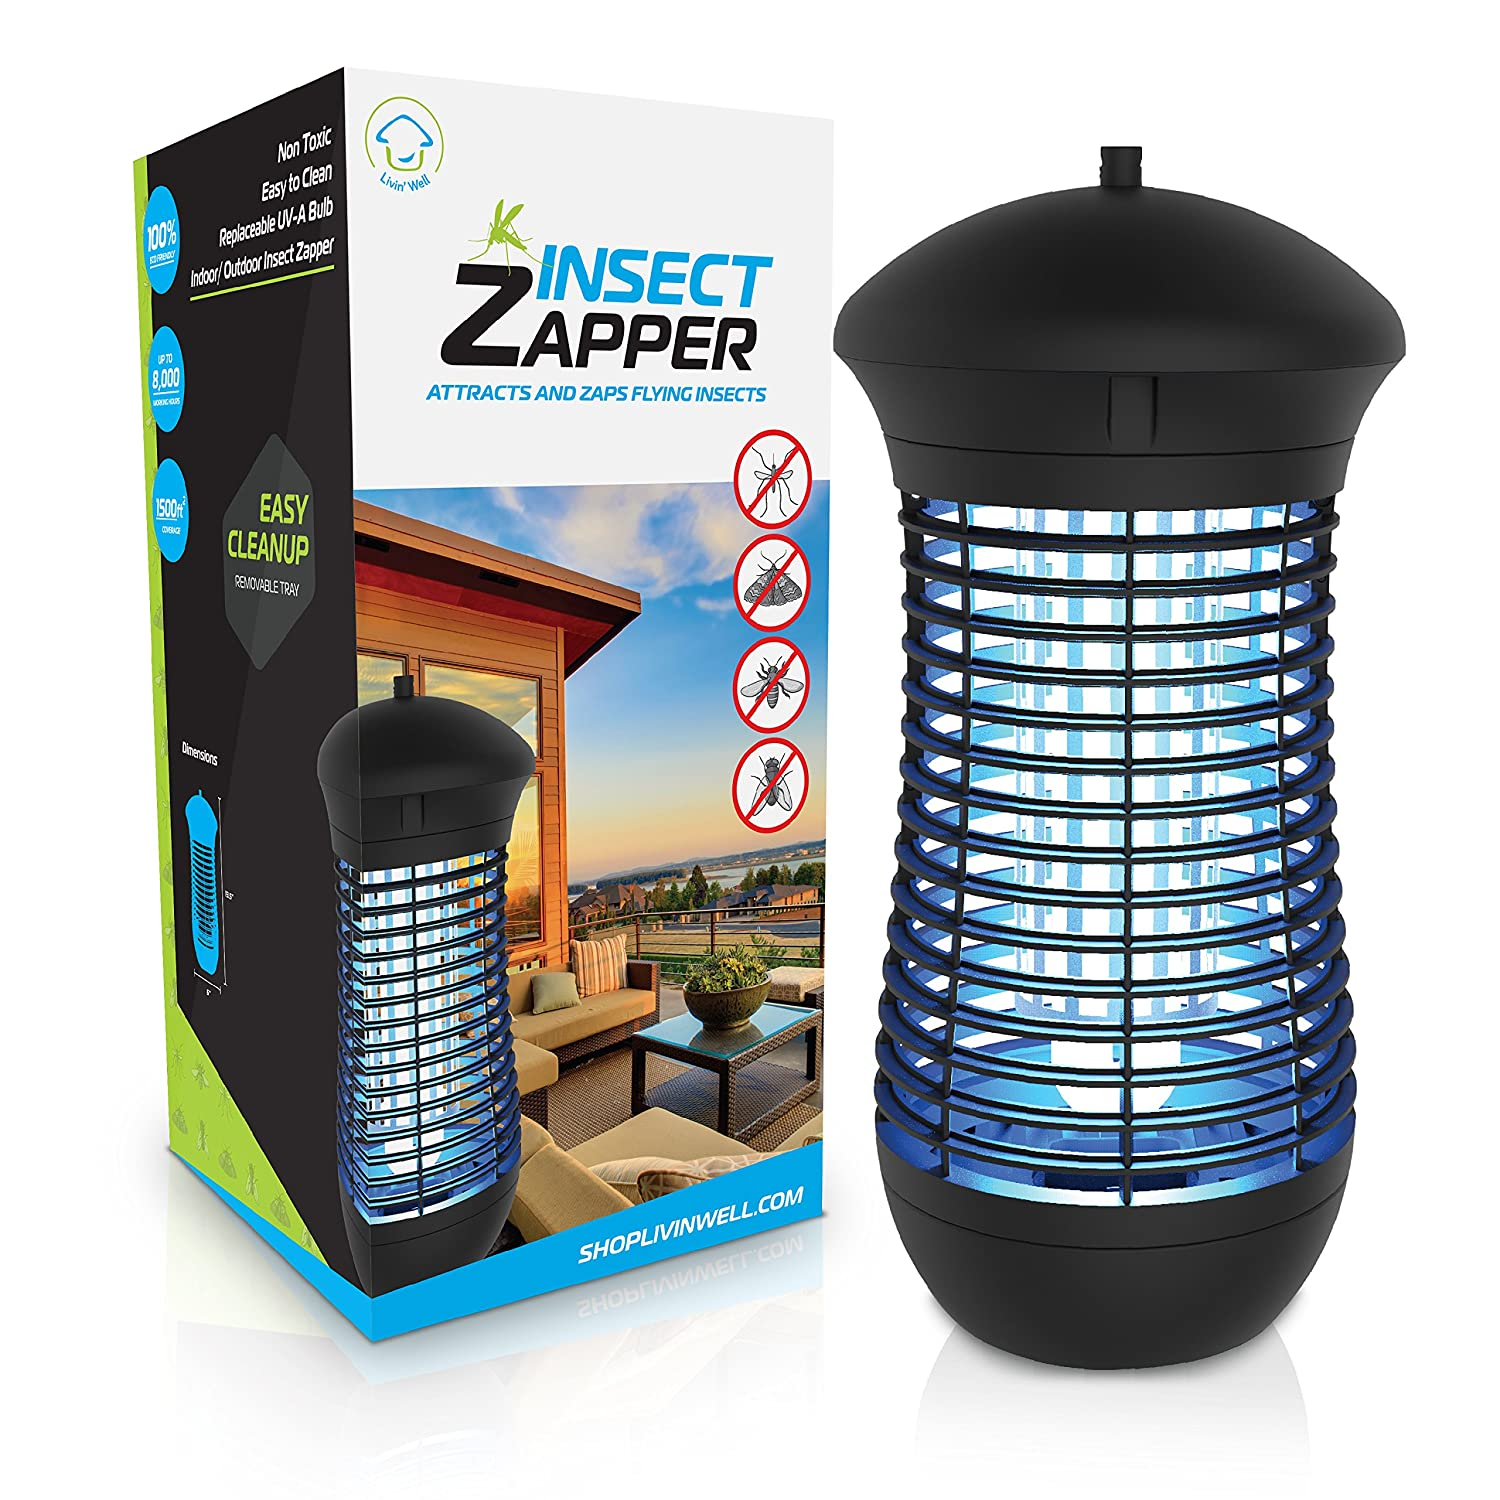 Livin' Well Electric Bug Zapper - Mini Insect Zapper Mosquito Killer Trap 5W UVA Mosquito Trap Light + Steel Outdoor Indoor Bug Zapper Grid Livin' Well GH-5N